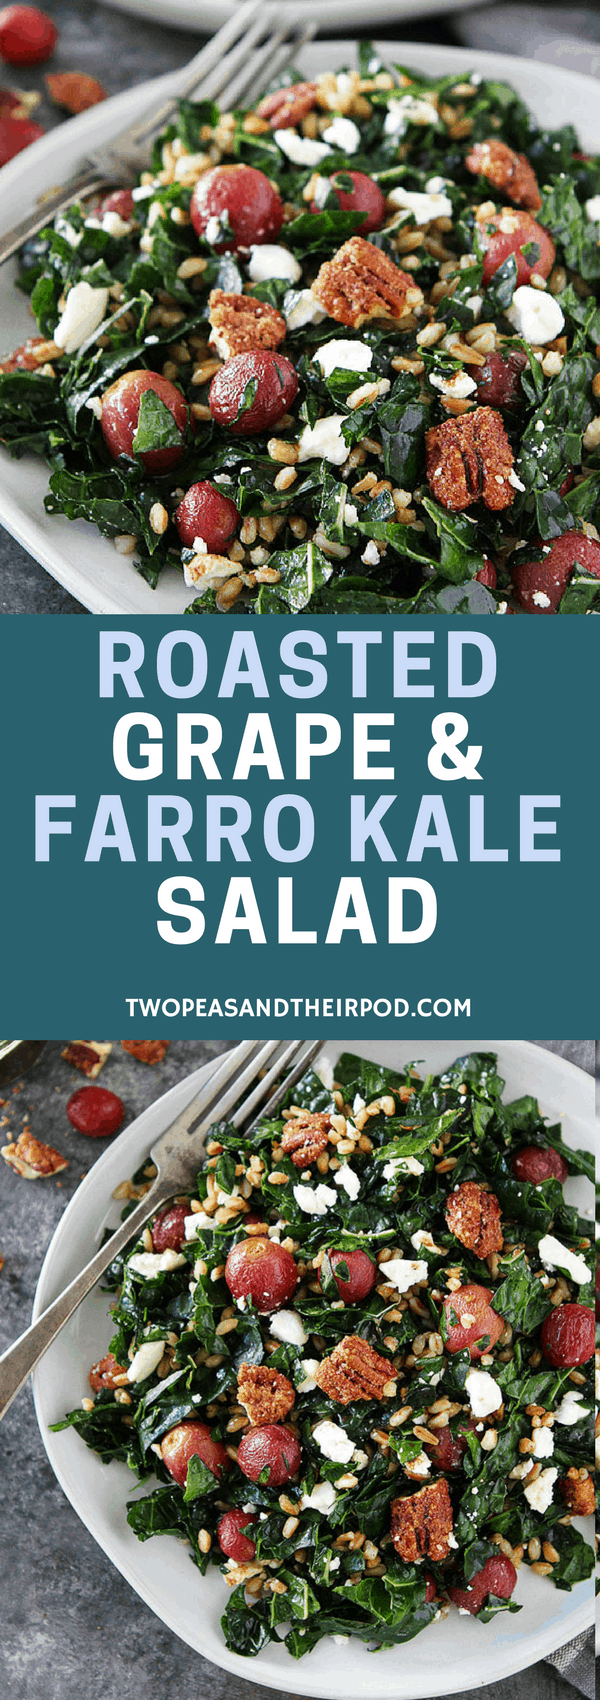 Roasted Grape and Farro Kale Salad with candied pecans, feta cheese, and balsamic dressing is a great salad for lunch or dinner! #salad #vegetarian #farro #kale #kalesalad